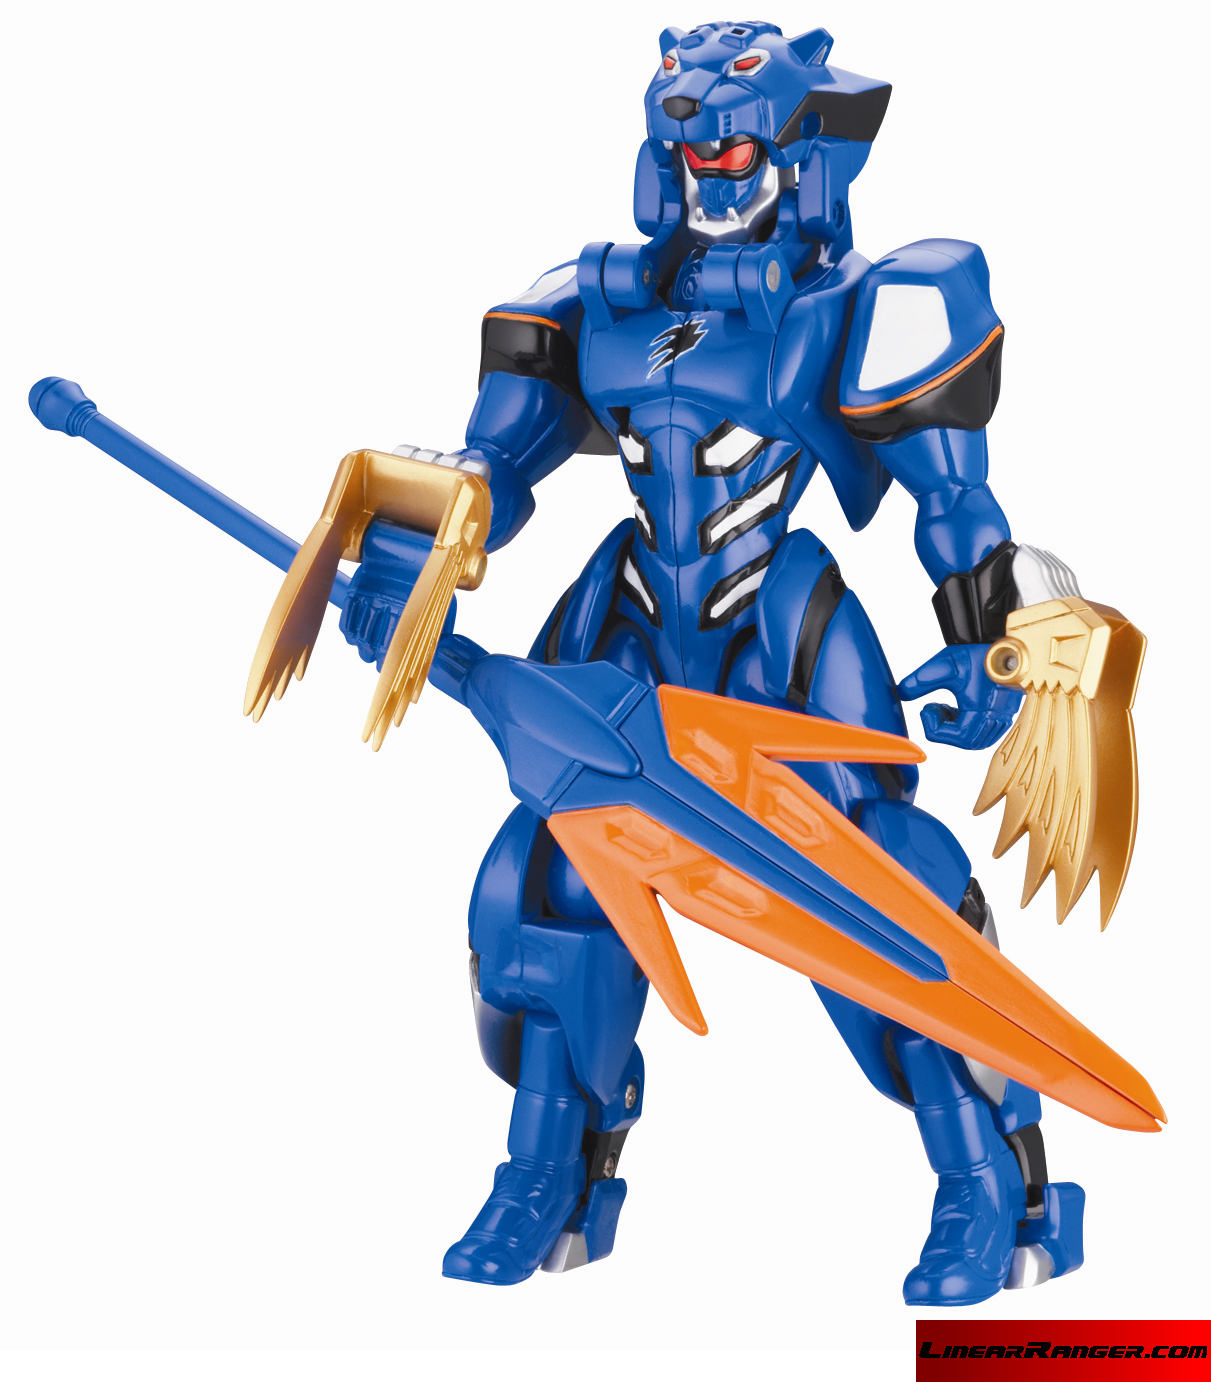 Power rangers jungle fury armored blue ranger figure battlizer power rangers jungle fury armored blue ranger figure battlizer voltagebd Image collections